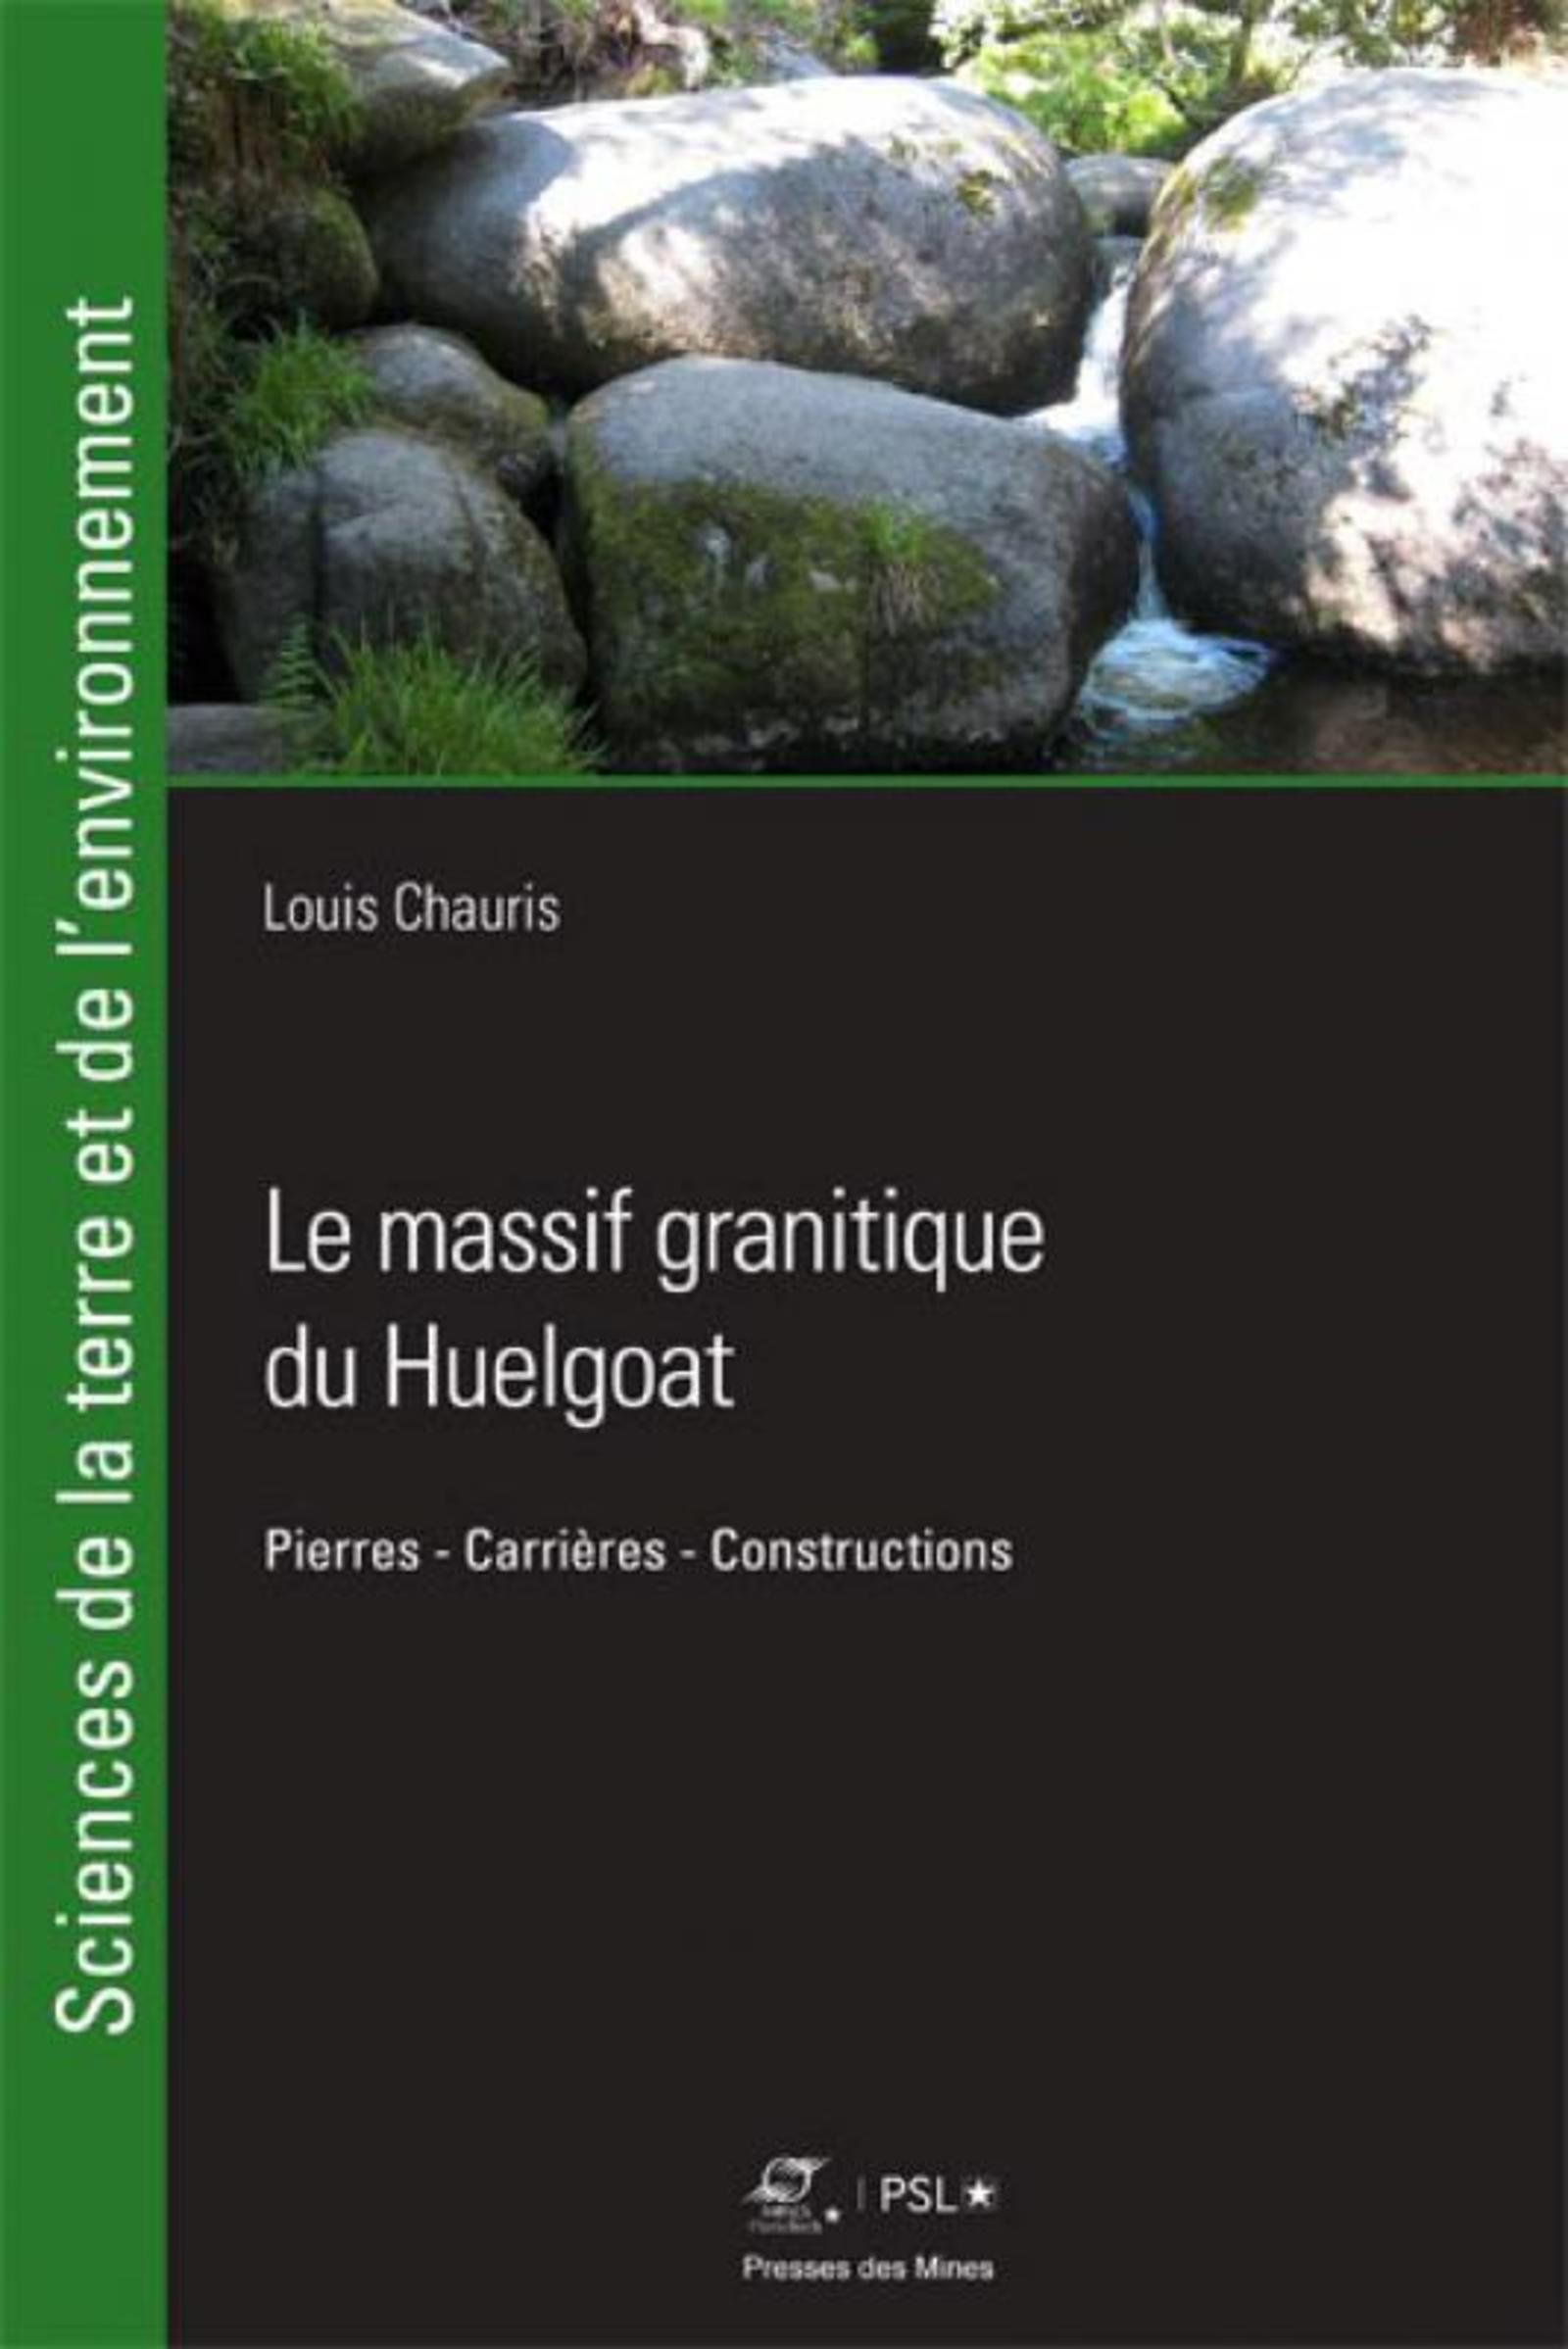 LE MASSIF GRANITIQUE DU HUELGOAT - PIERRES - CARRIERES - CONSTRUCTION